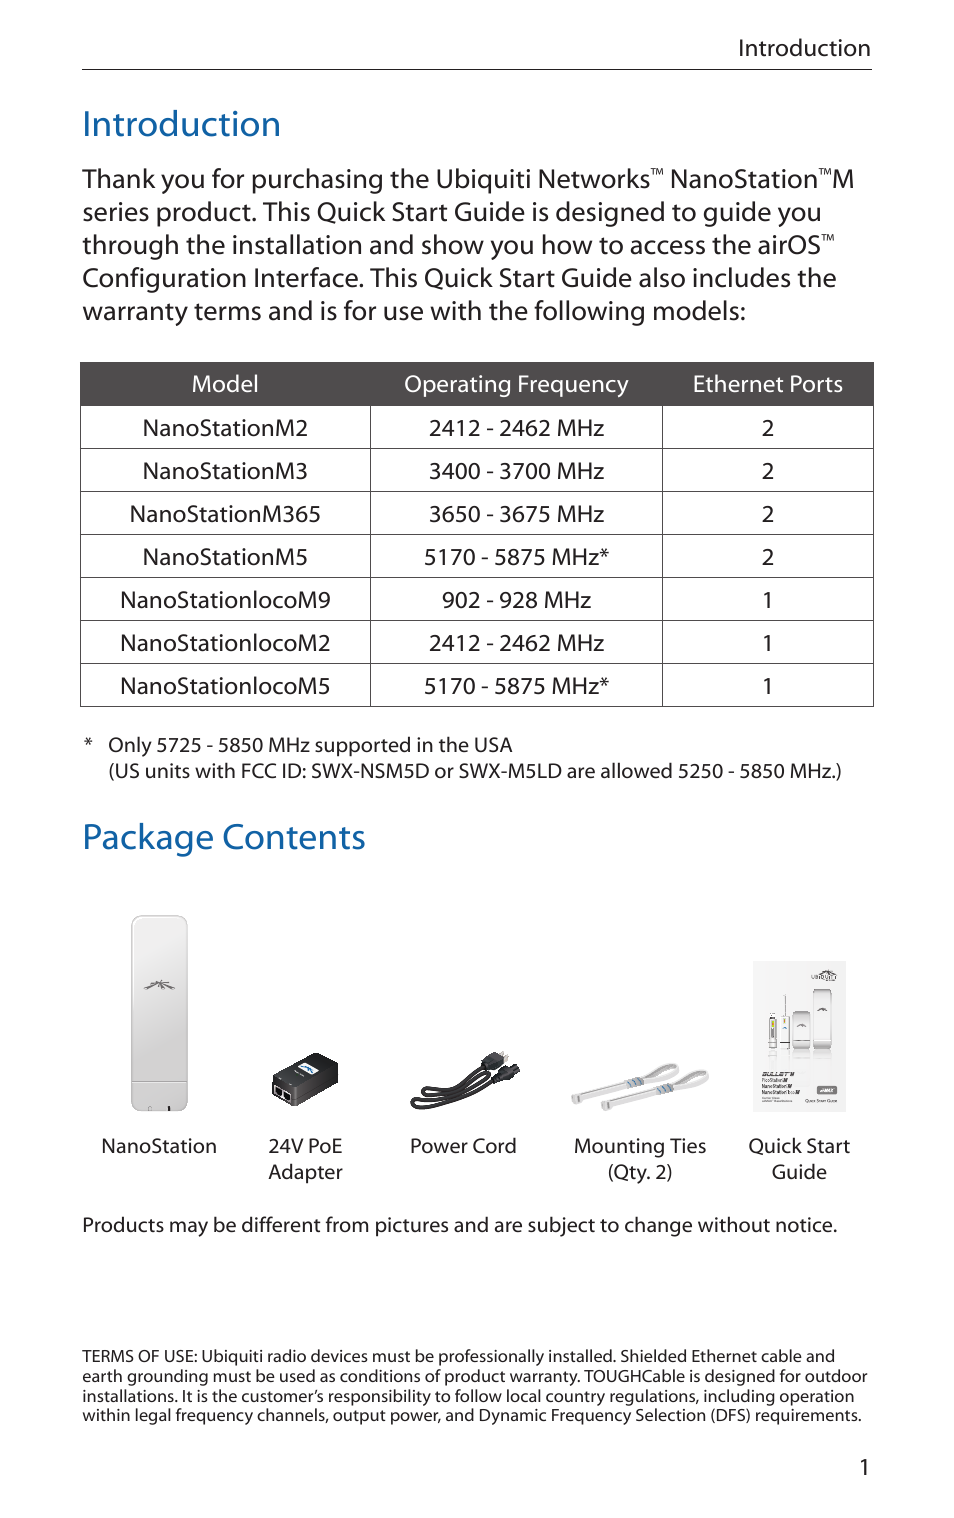 Introduction, Package contents, Nanostation | Ubiquiti